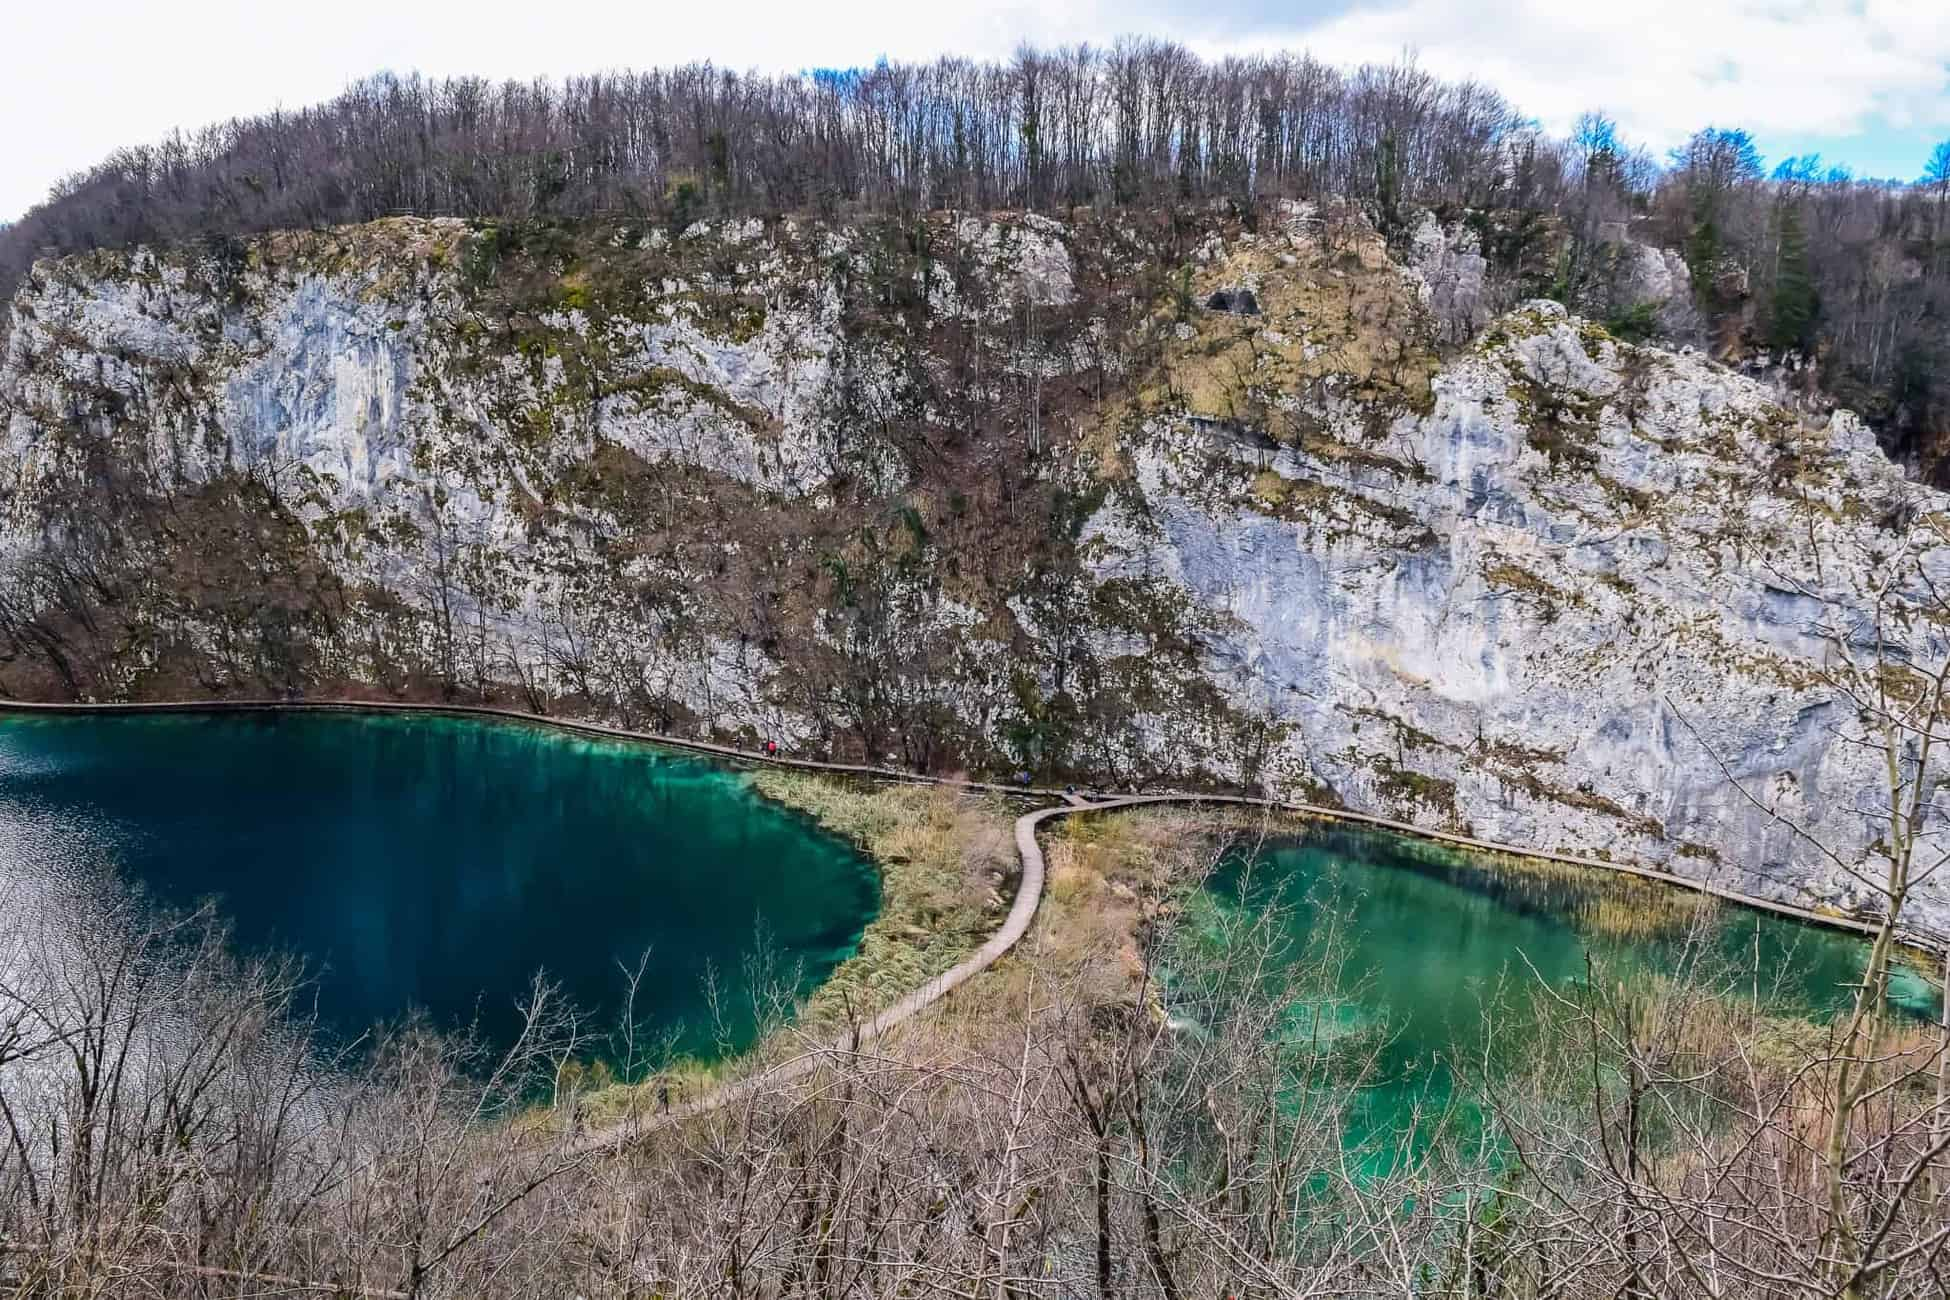 Viewpoint in Plitvice National Park